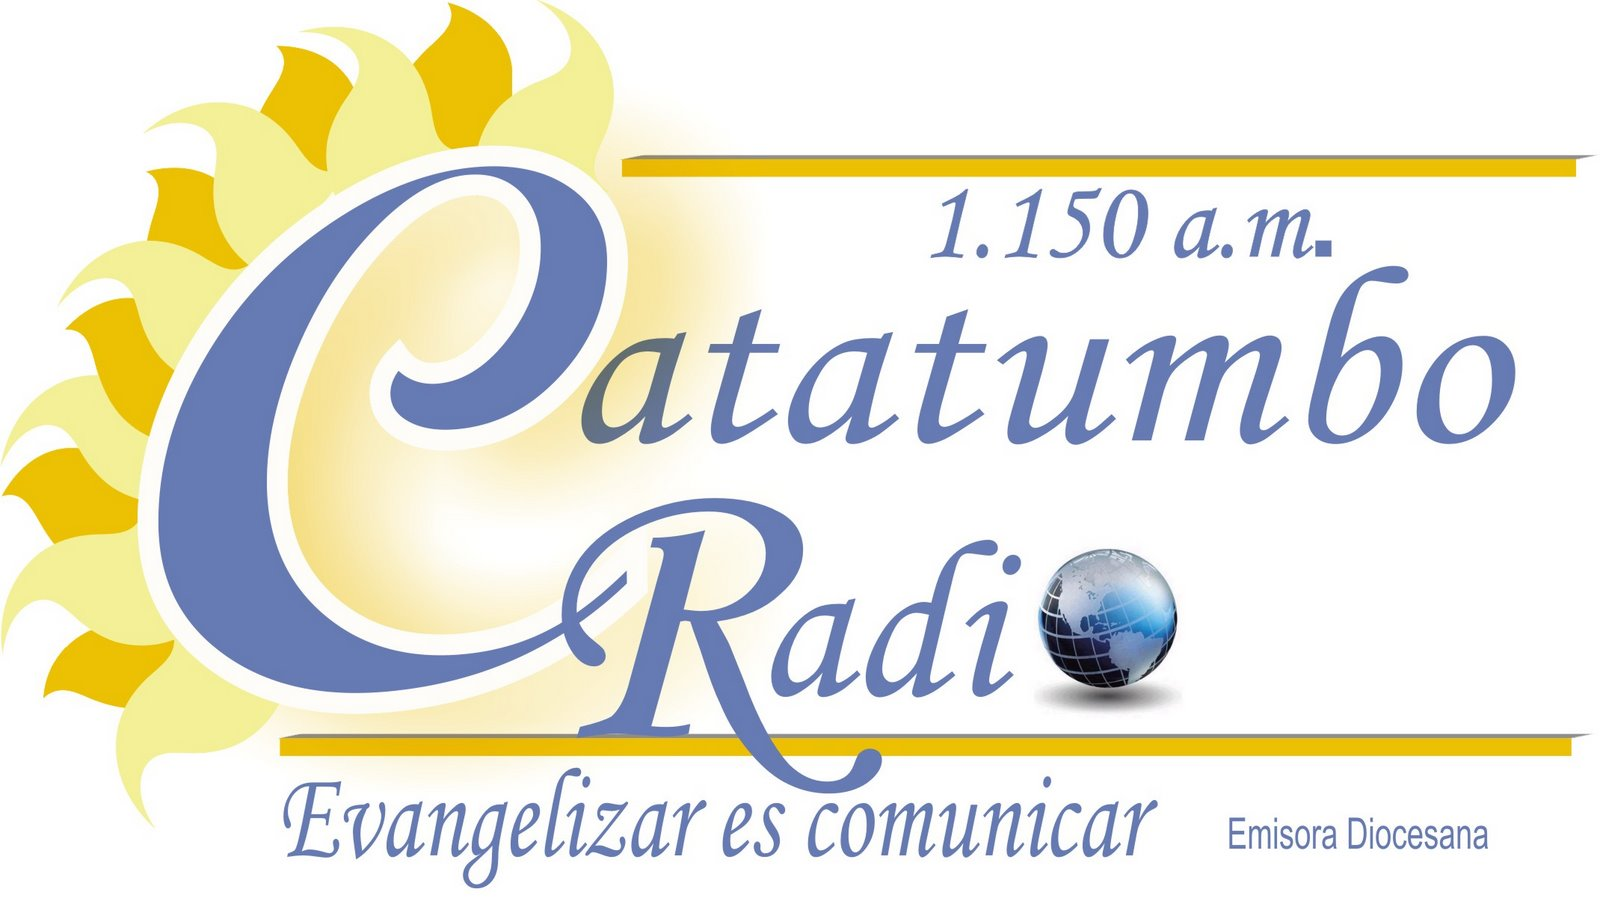 CATATUMBO RADIO 1150 A.M